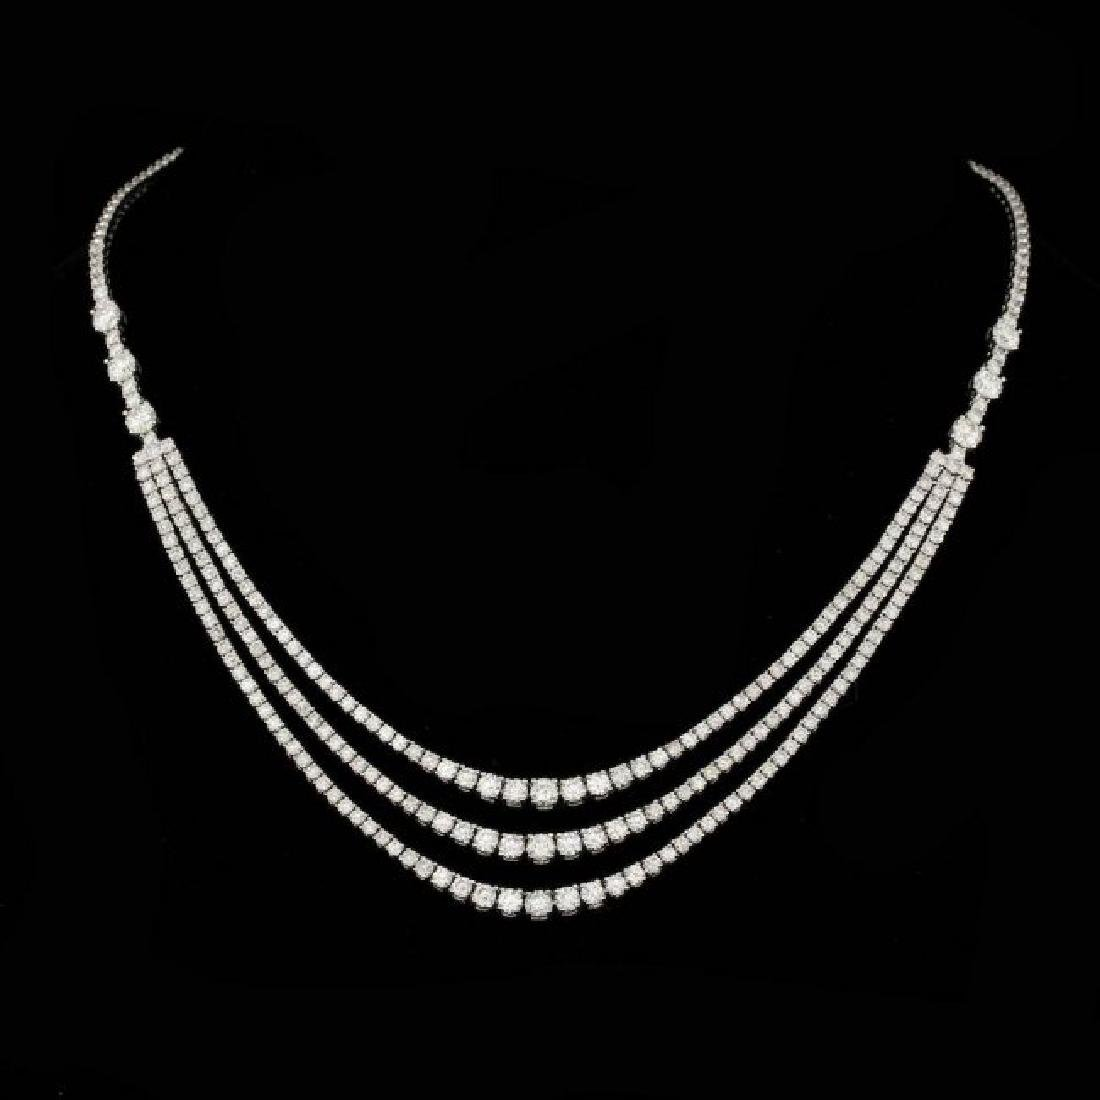 18k White Gold 12.60ct Diamond Necklace